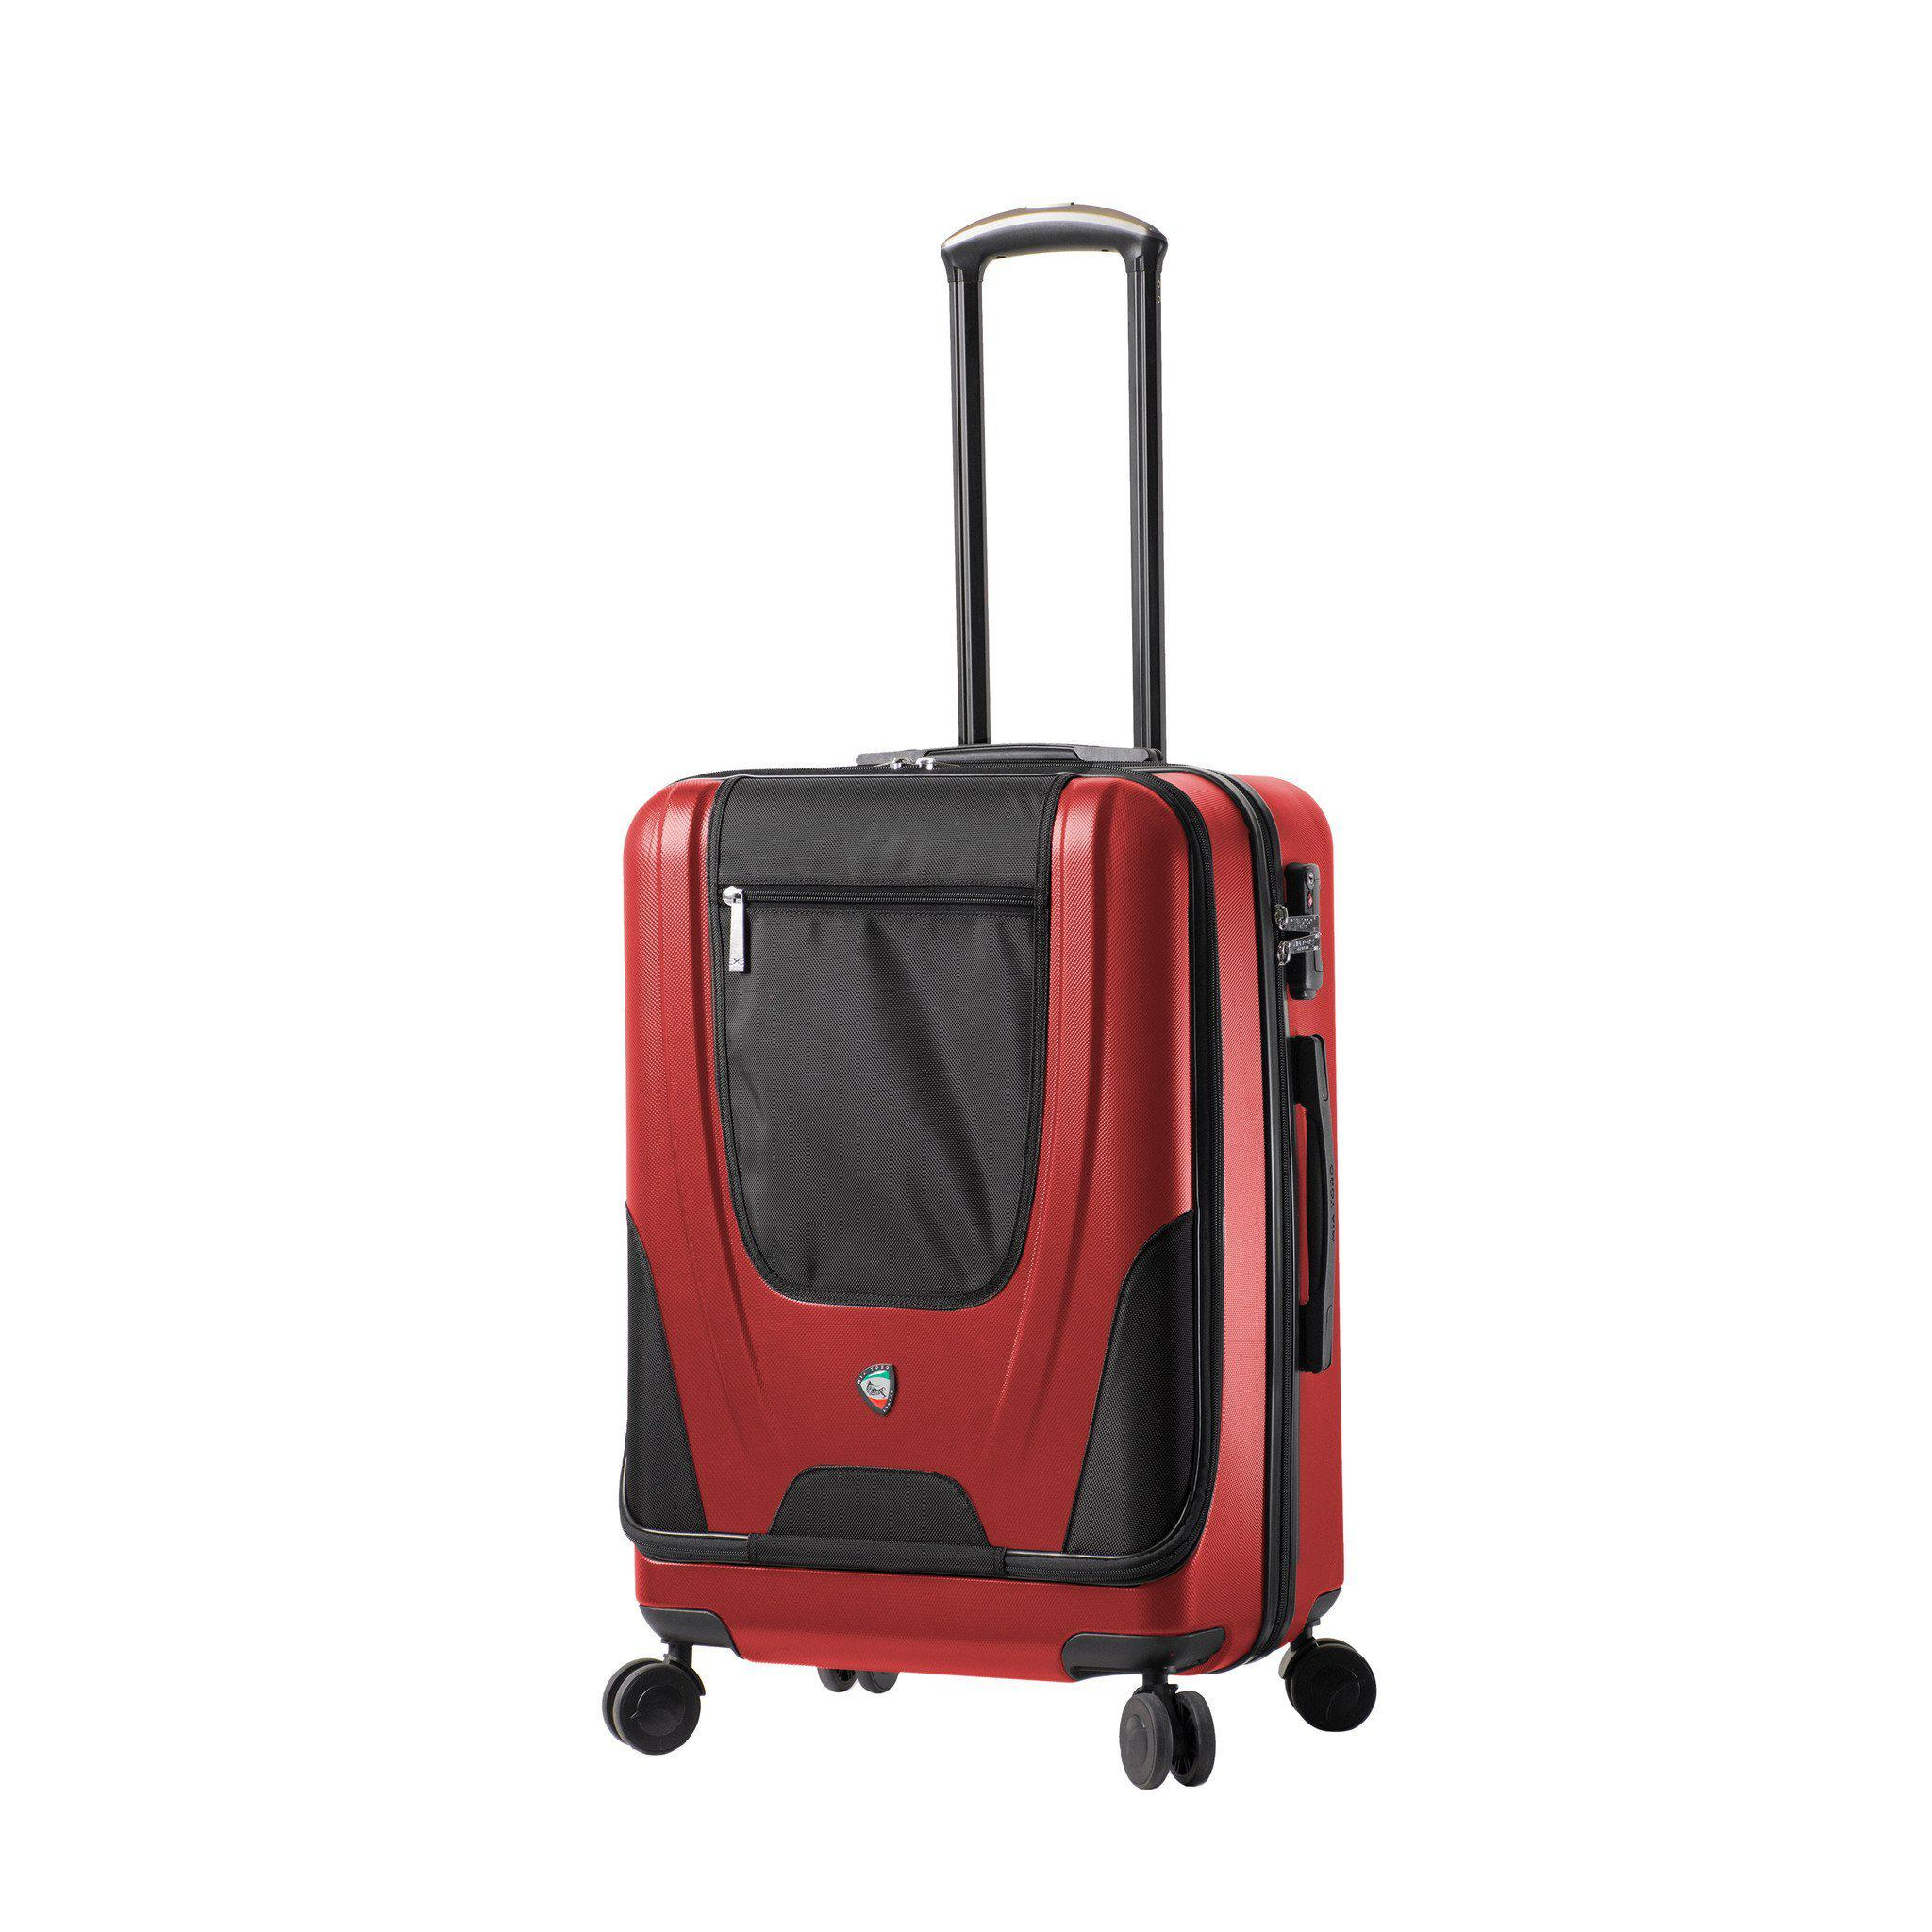 "Ibeido Hardside Fusion 24"" Spinner Luggage With Front Pocket"